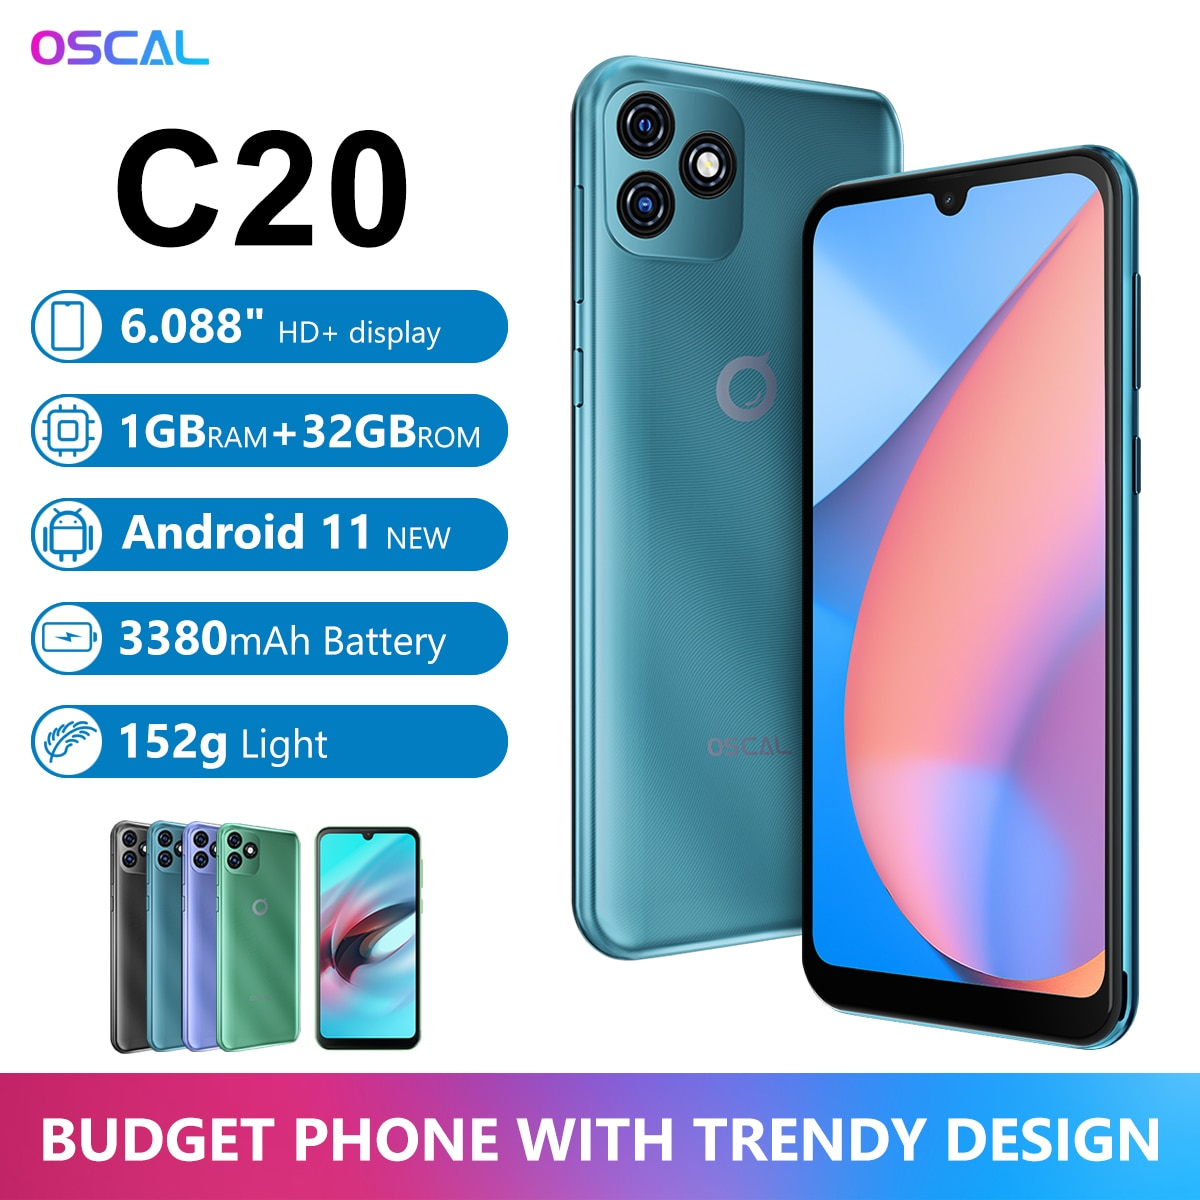 BLACKVIEW OSCAL C20 Android 11 3G Smartphone 1GB+32GB 6.088